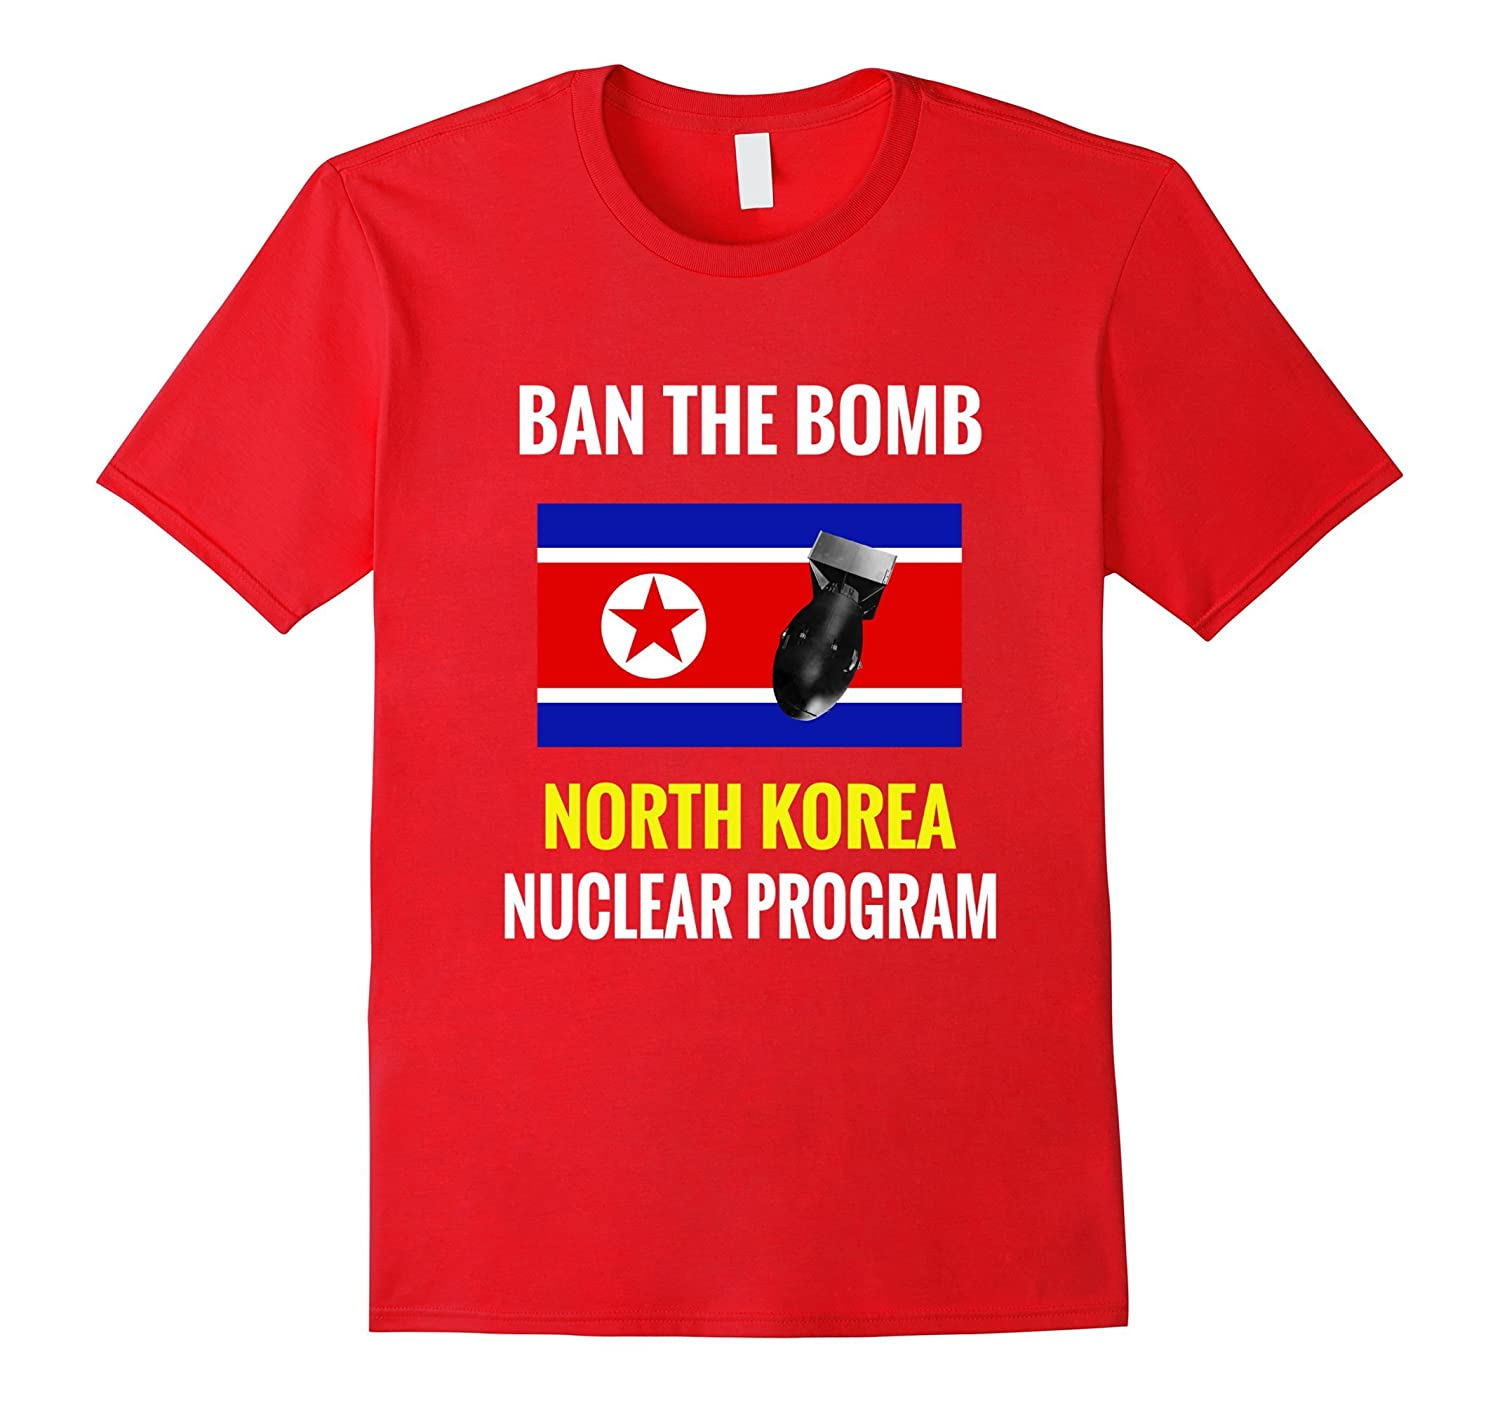 North Korea Nuclear Program Ban the Bomb T-shirt-TH